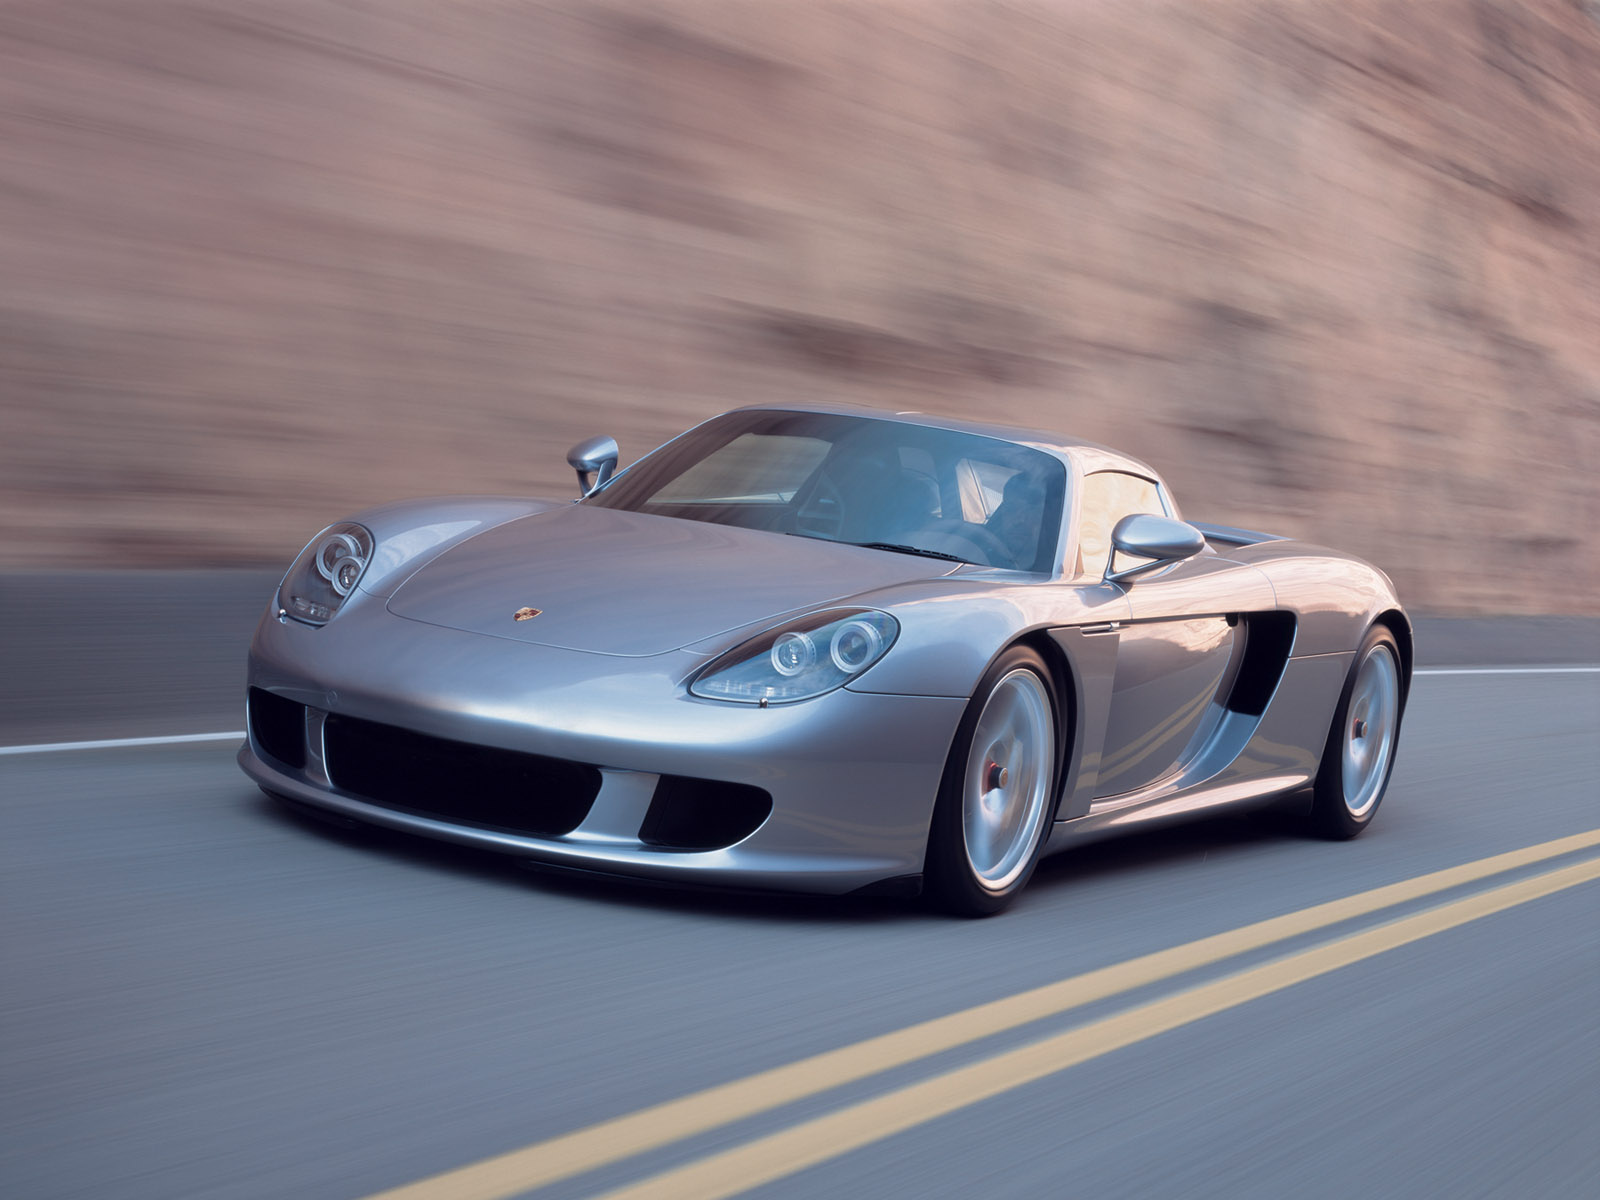 https://www.supercars.net/blog/wp-content/uploads/2016/05/Porsche-Carrera-GT-FA-Speed-1600x1200.jpg